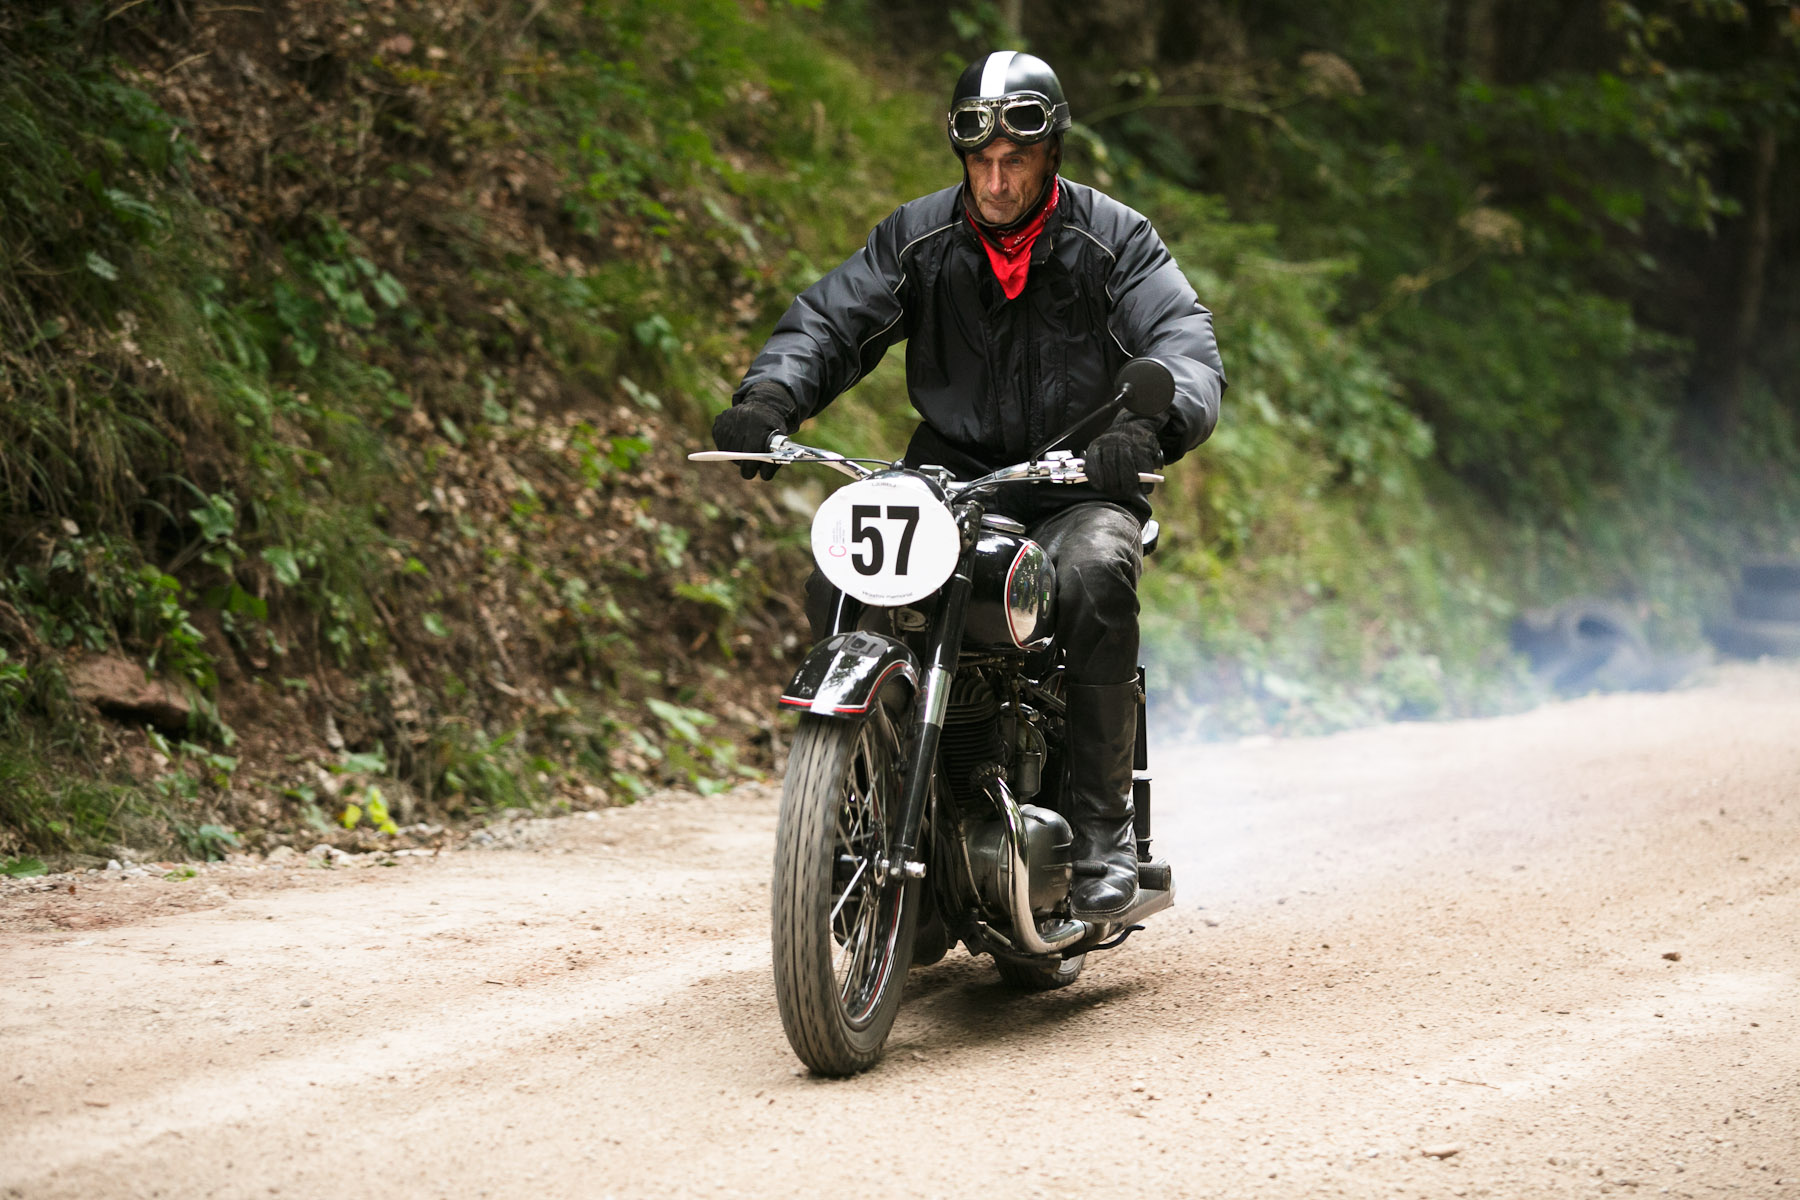 Viljem Krpic (SLO) on a 1953 Puch motorcycle competes in the 19th Hrast Memorial, the international oldtimers\' mountain race in Ljubelj, Slovenia, Sep. 13, 2015.